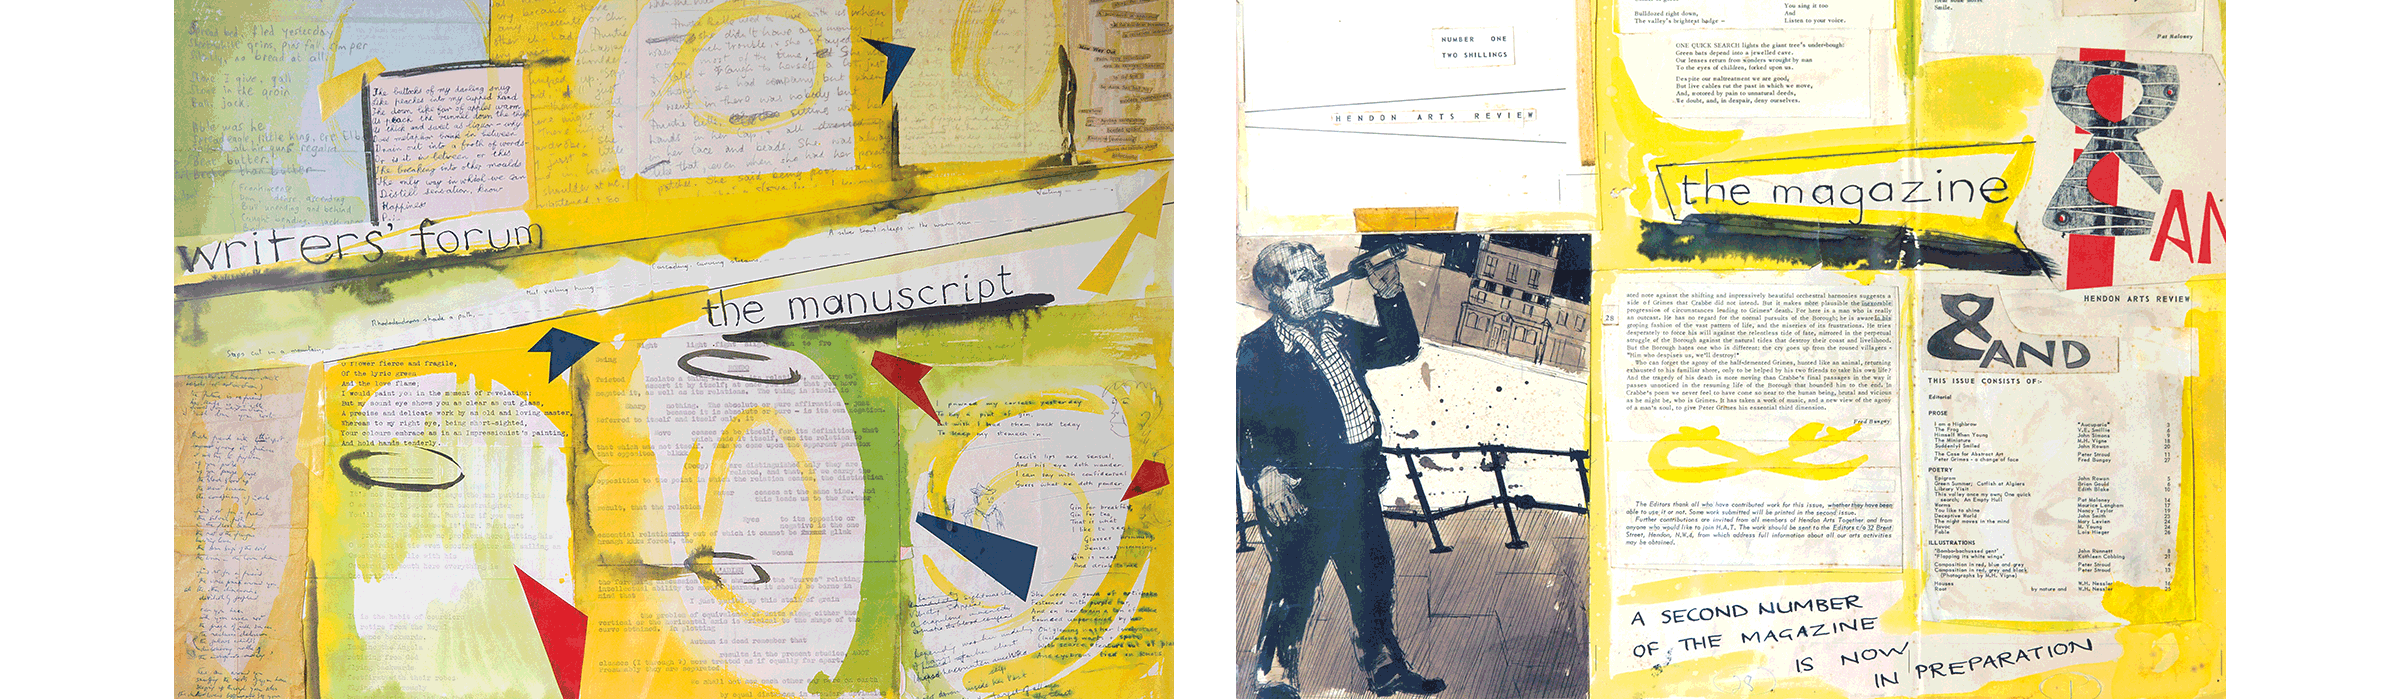 left to right: writers' forum the manuscript, 1952; Collage for AND magazine, 1955.